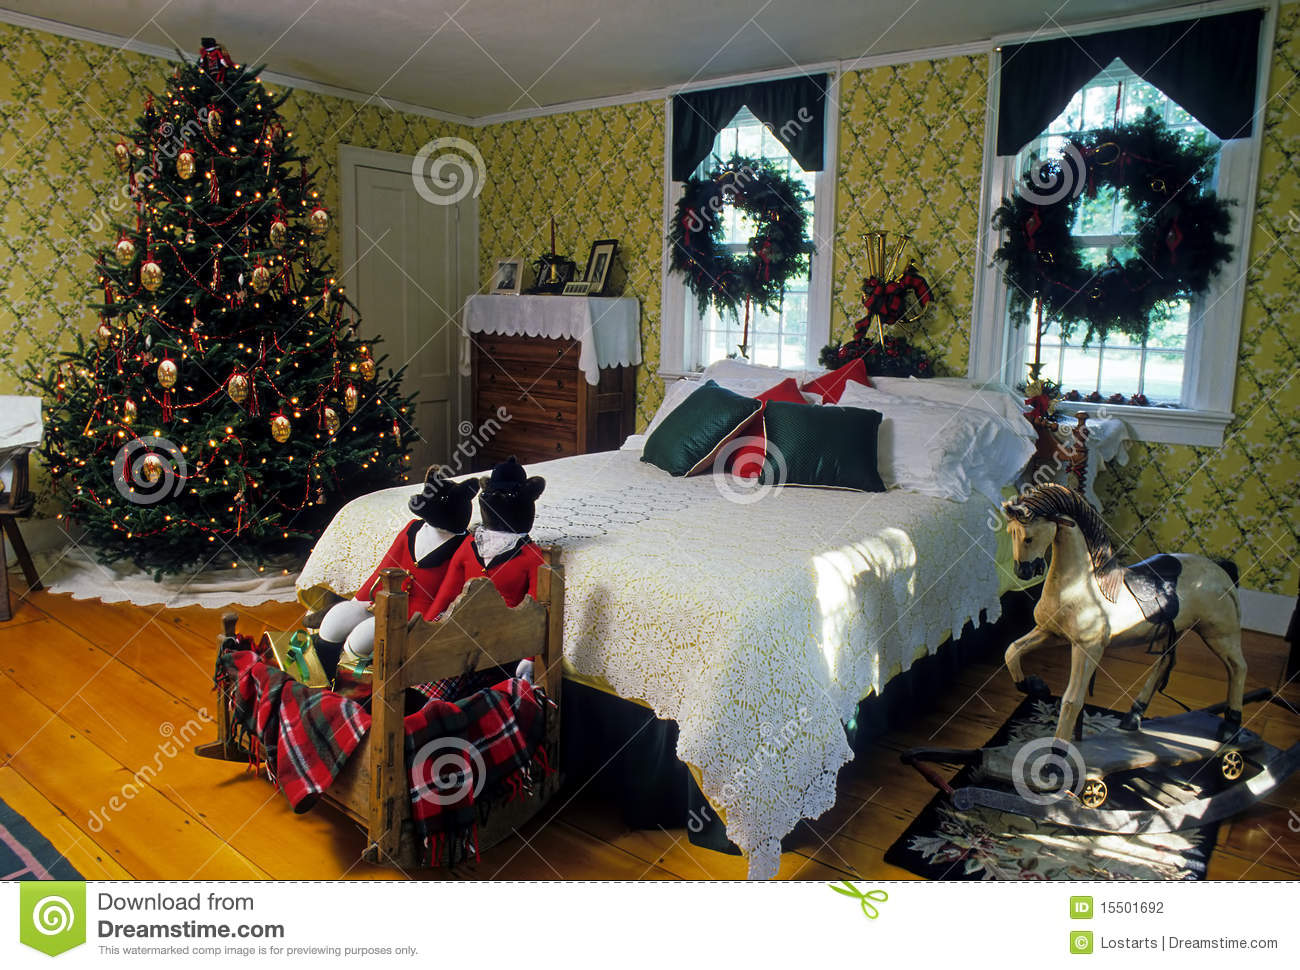 il natale ha decorato la camera da letto fotografia stock